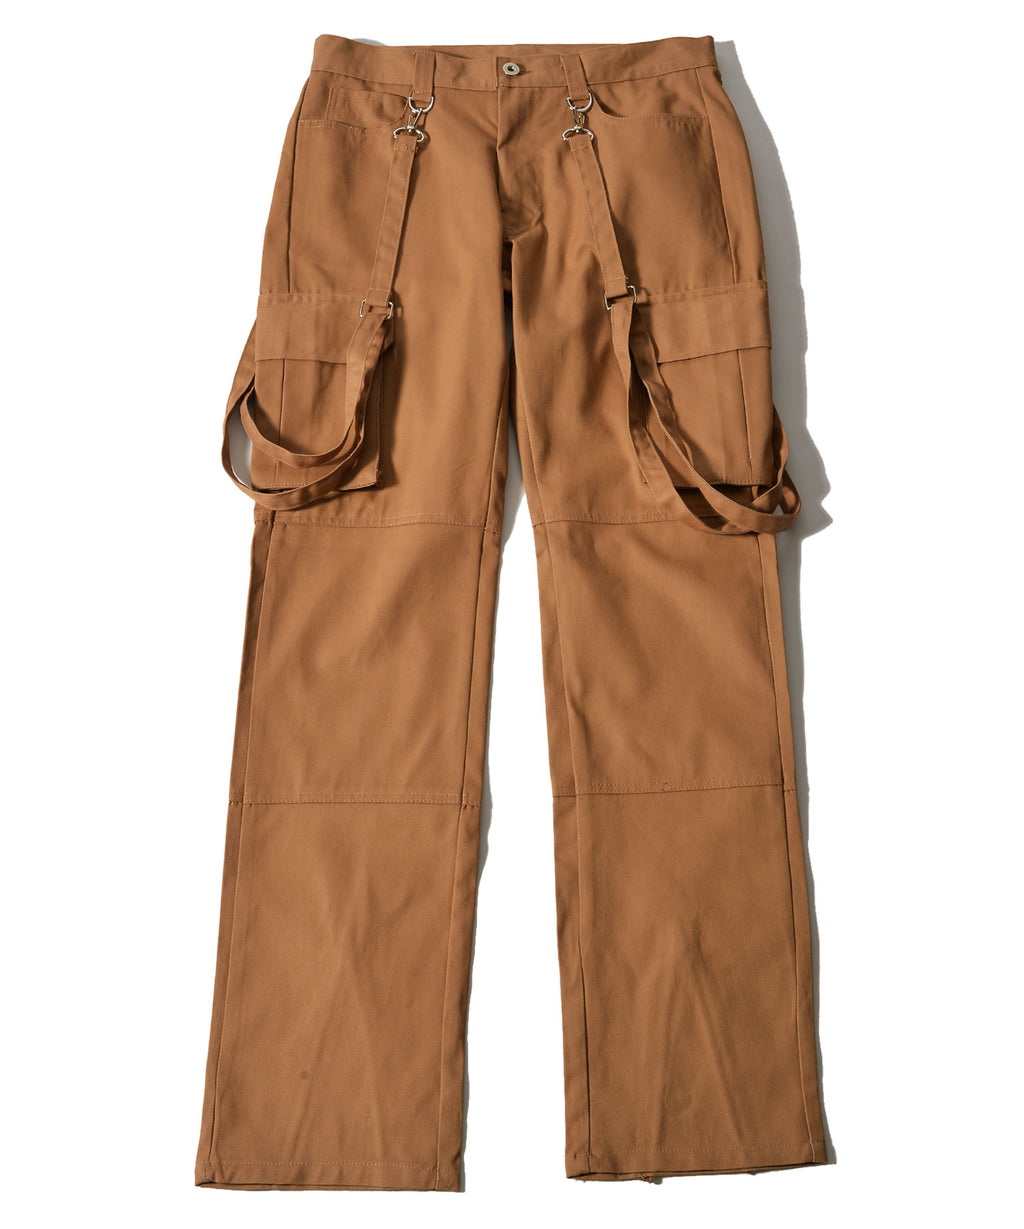 Cargo pants with BULLISH suspension